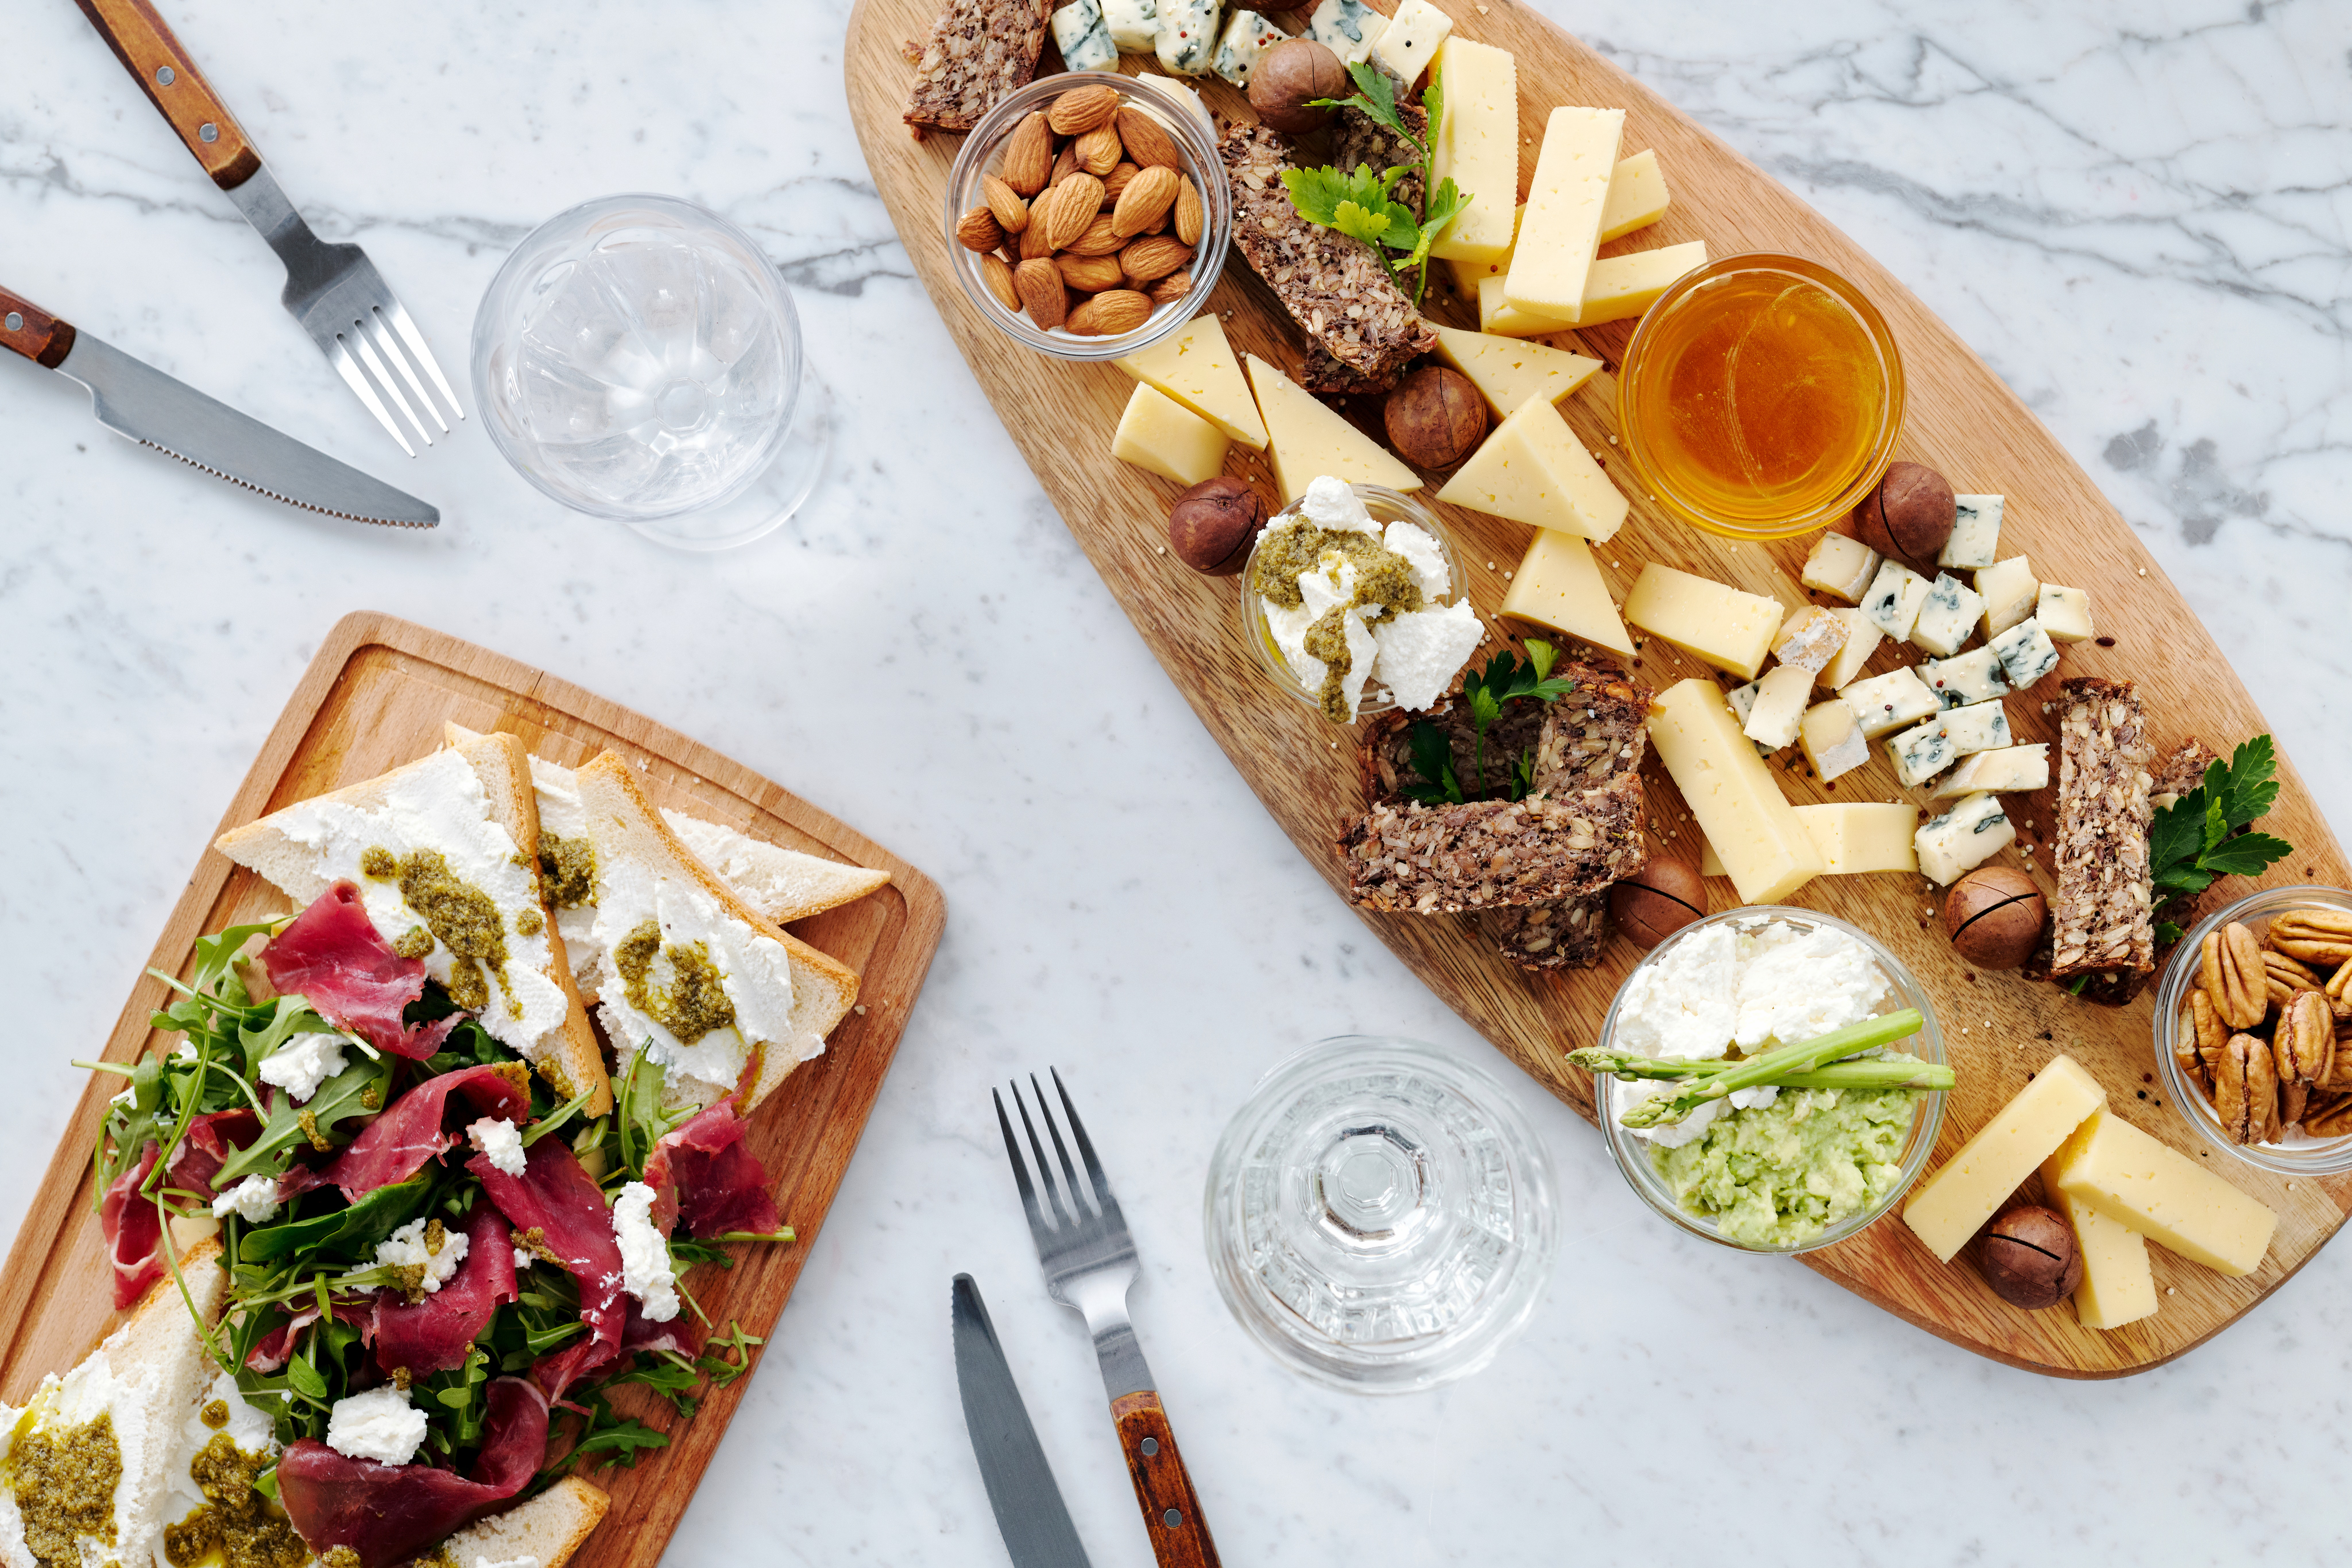 long oval charcuterie board filled with antipasto and deli items beside a rectangle wood board filled with meats, greens and breads